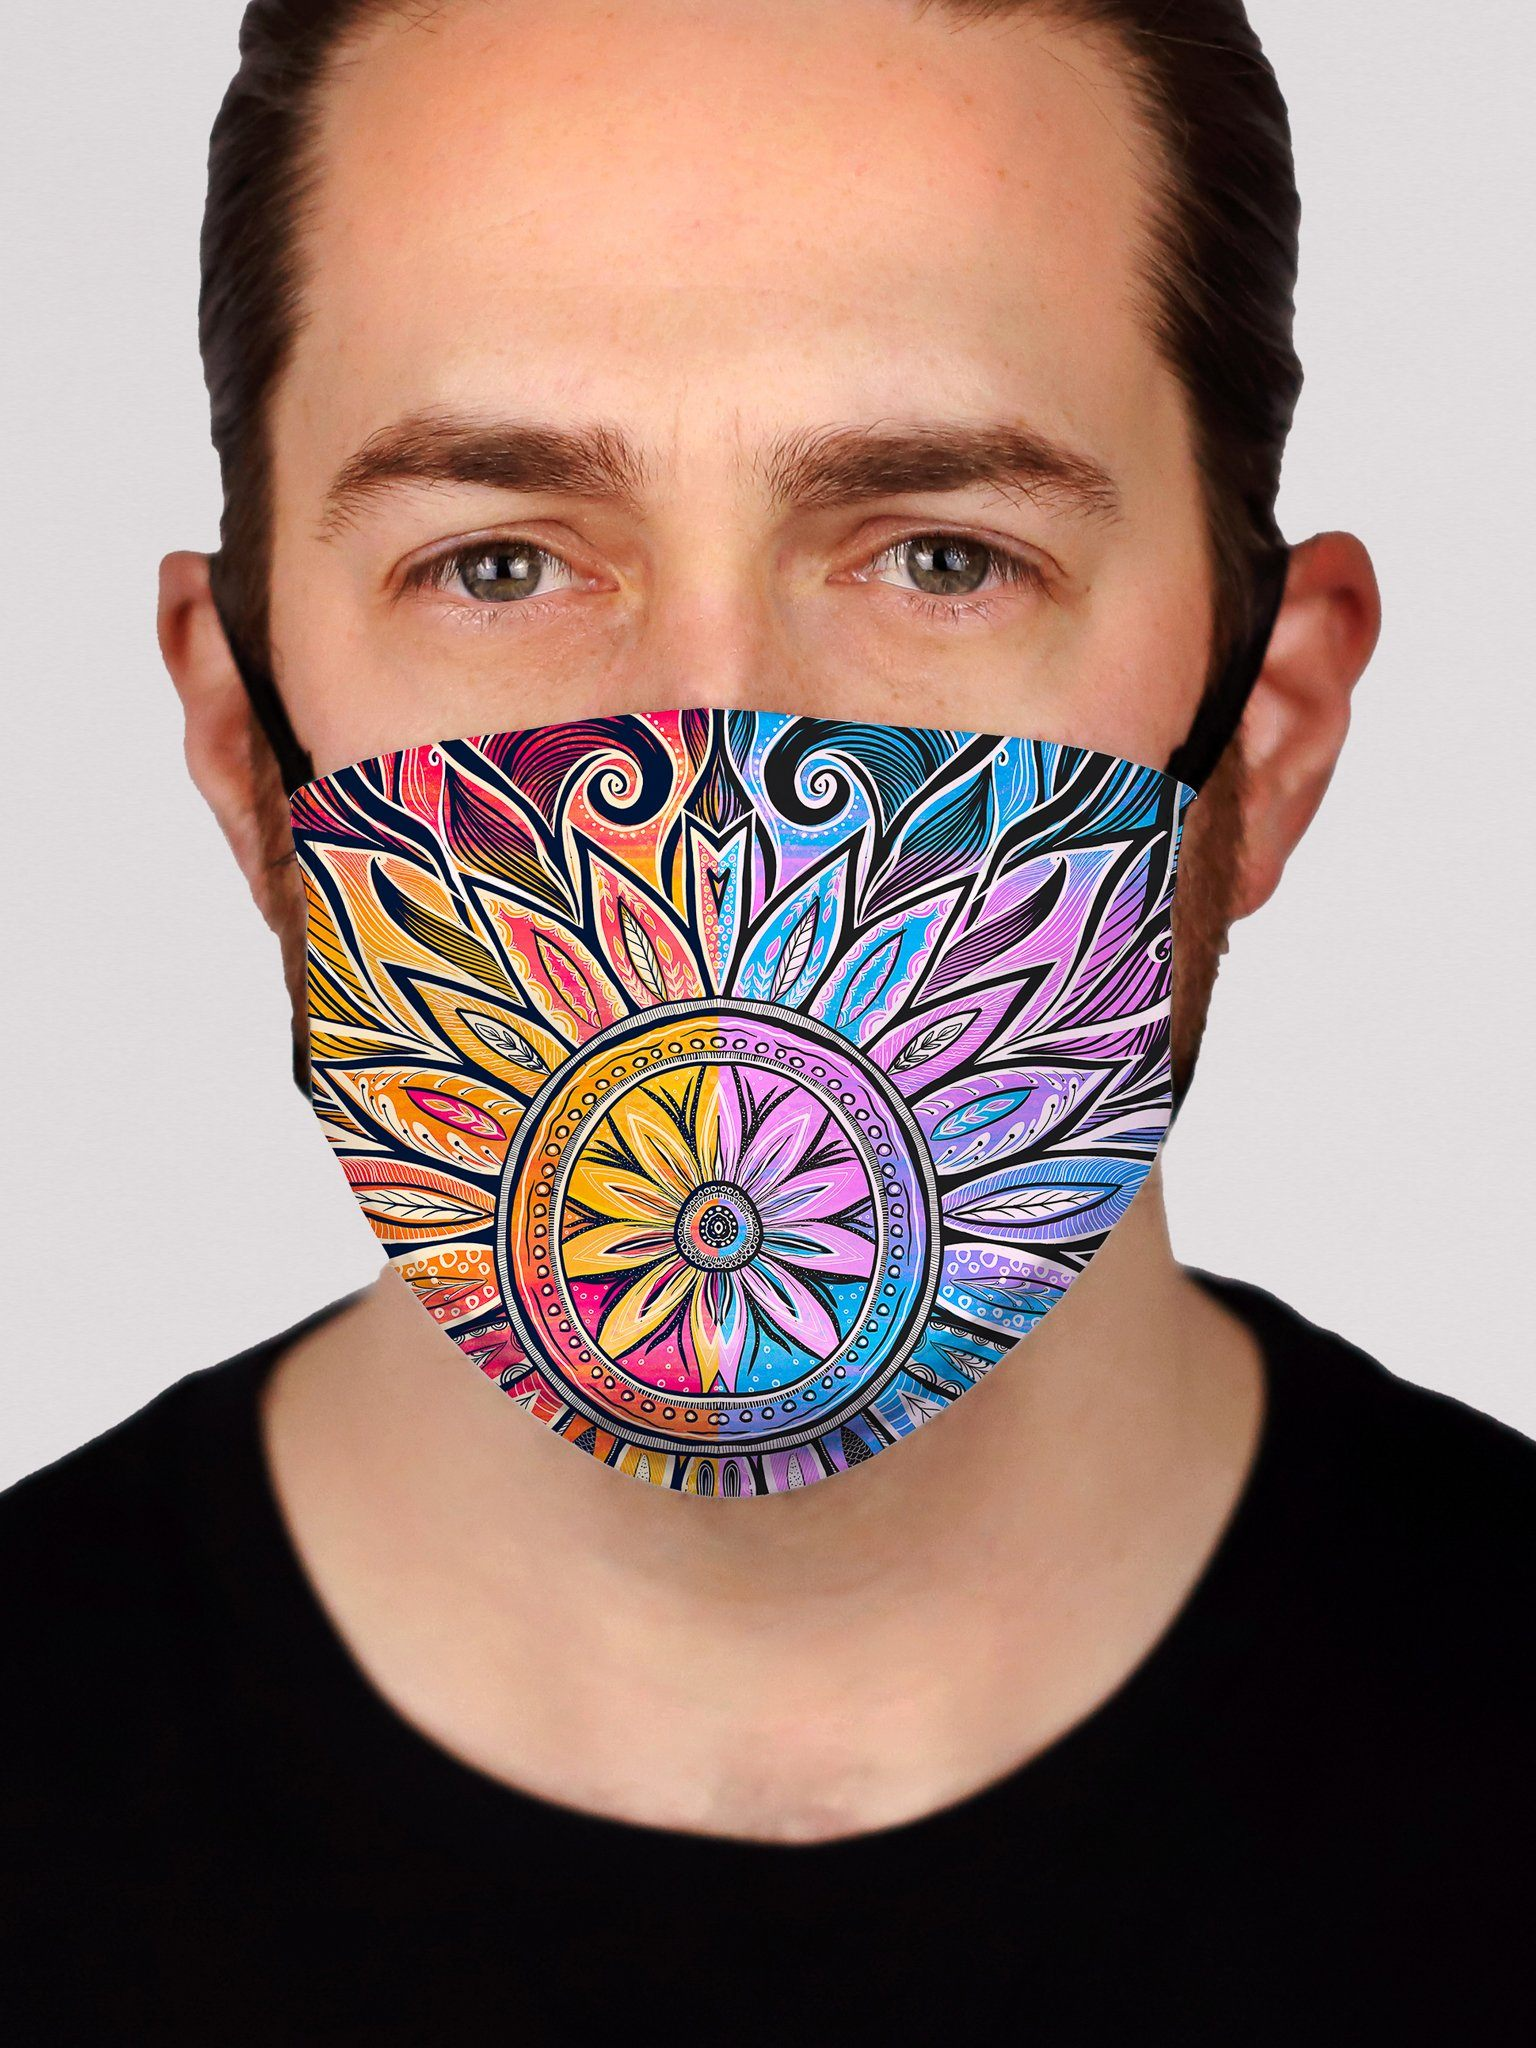 Sun & Moon-Ray Mandala Face Mask Face Masks Electro Threads 8 INCHES Sun & Moon-Ray